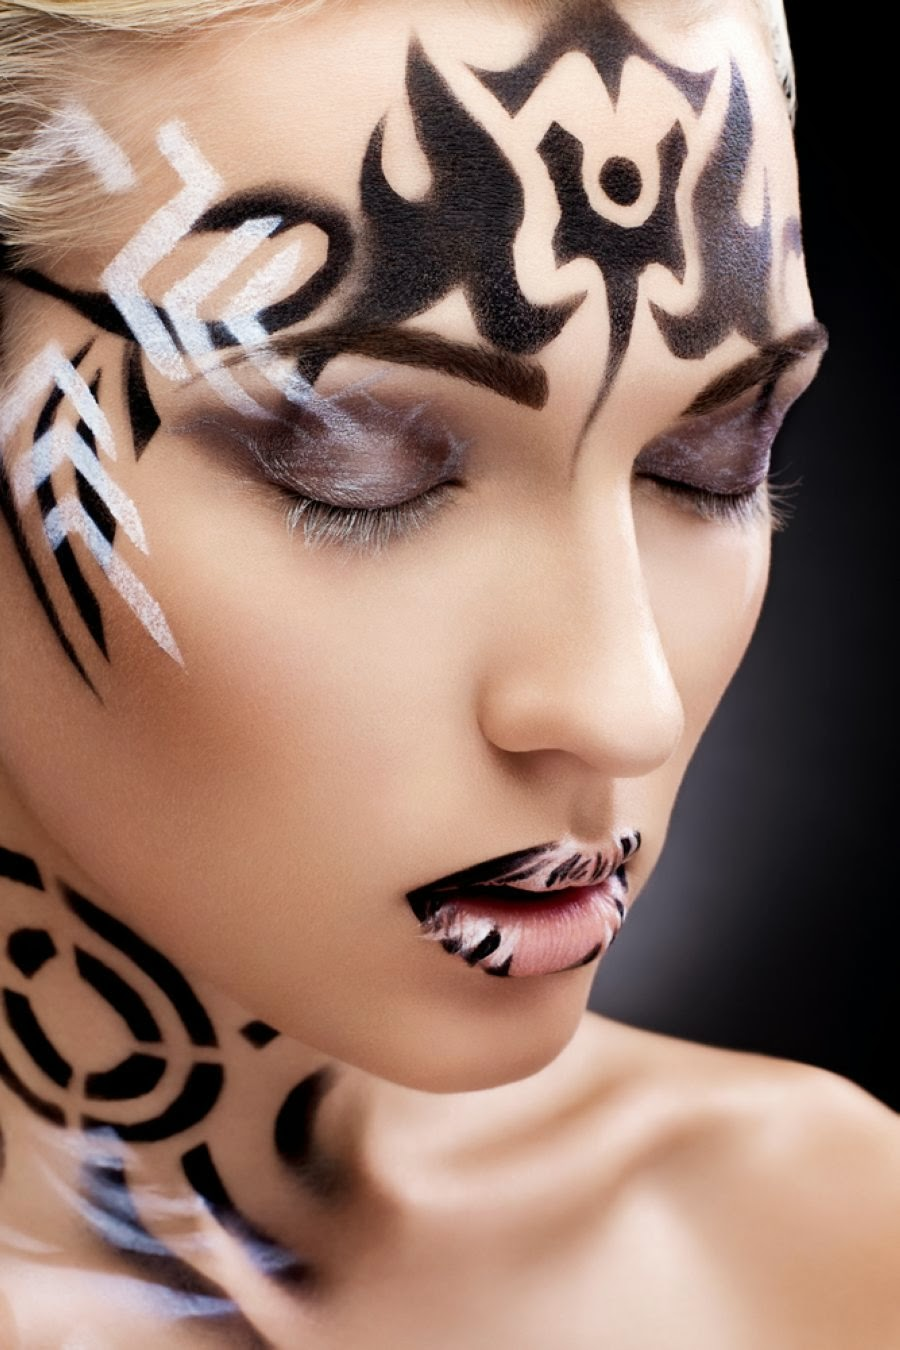 Incredibly Awesome Beauty And Makeup Portraits